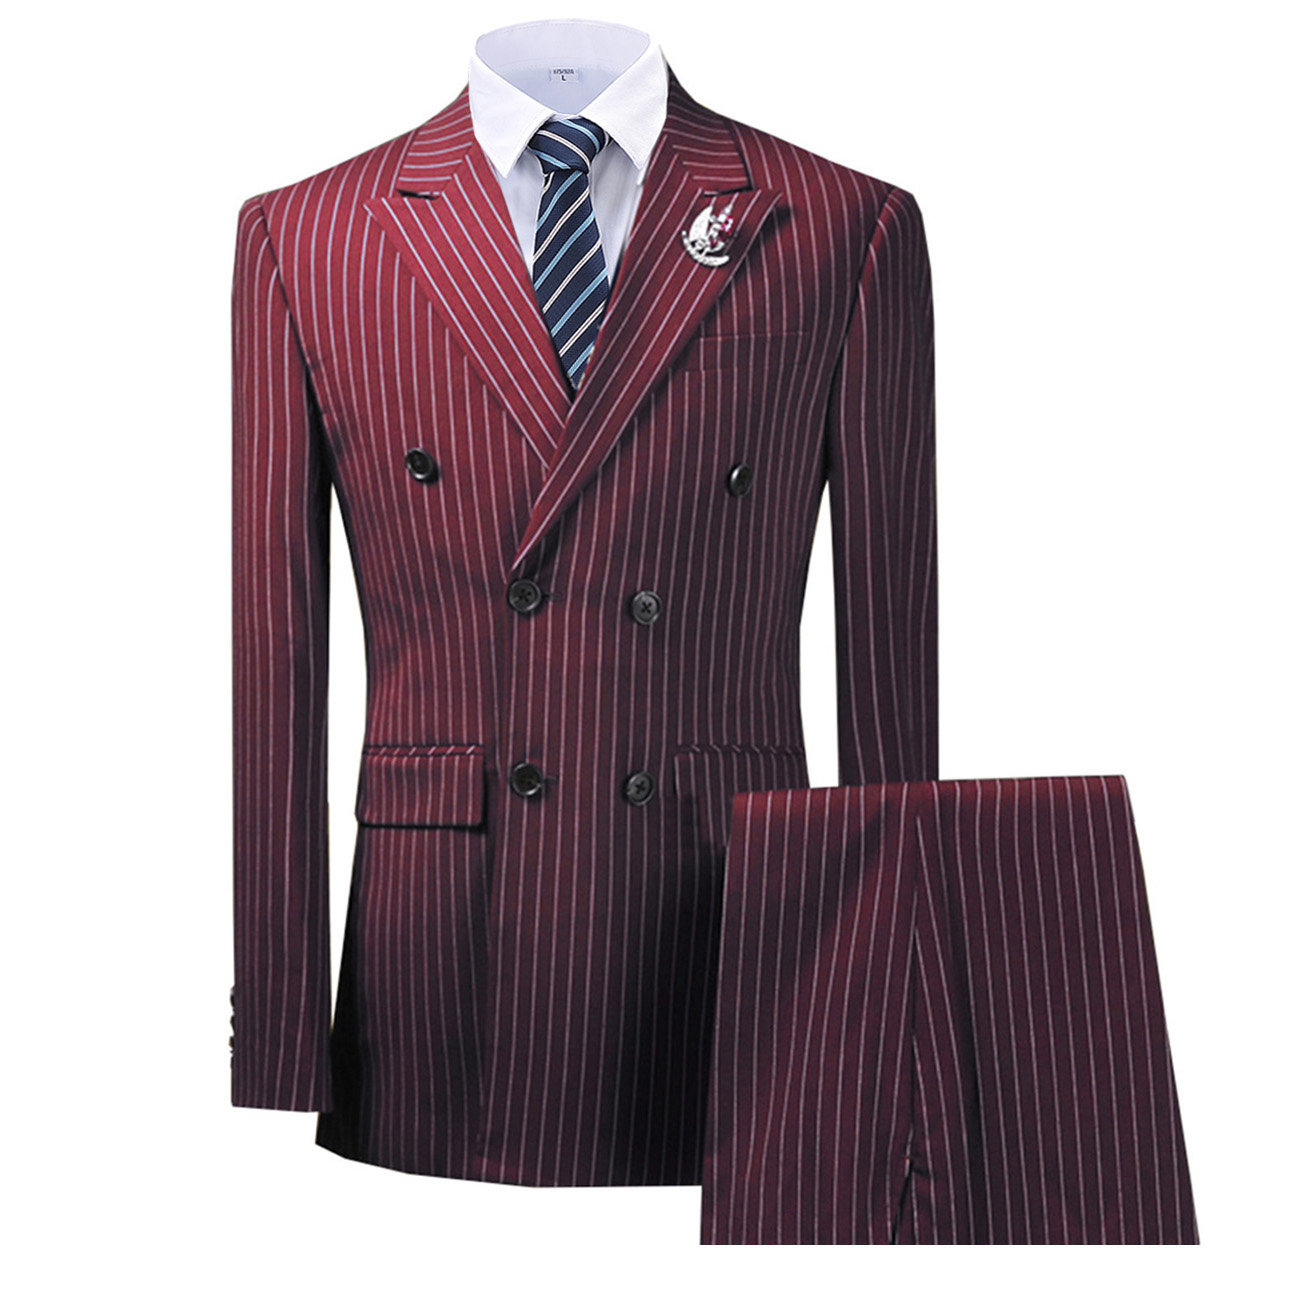 Double Breasted Peak Lapel Stripes Burgundy Blazer Two Pieces Mens Suit with Pants Formal Navy Jacket For Wedding Groom Tuxedos